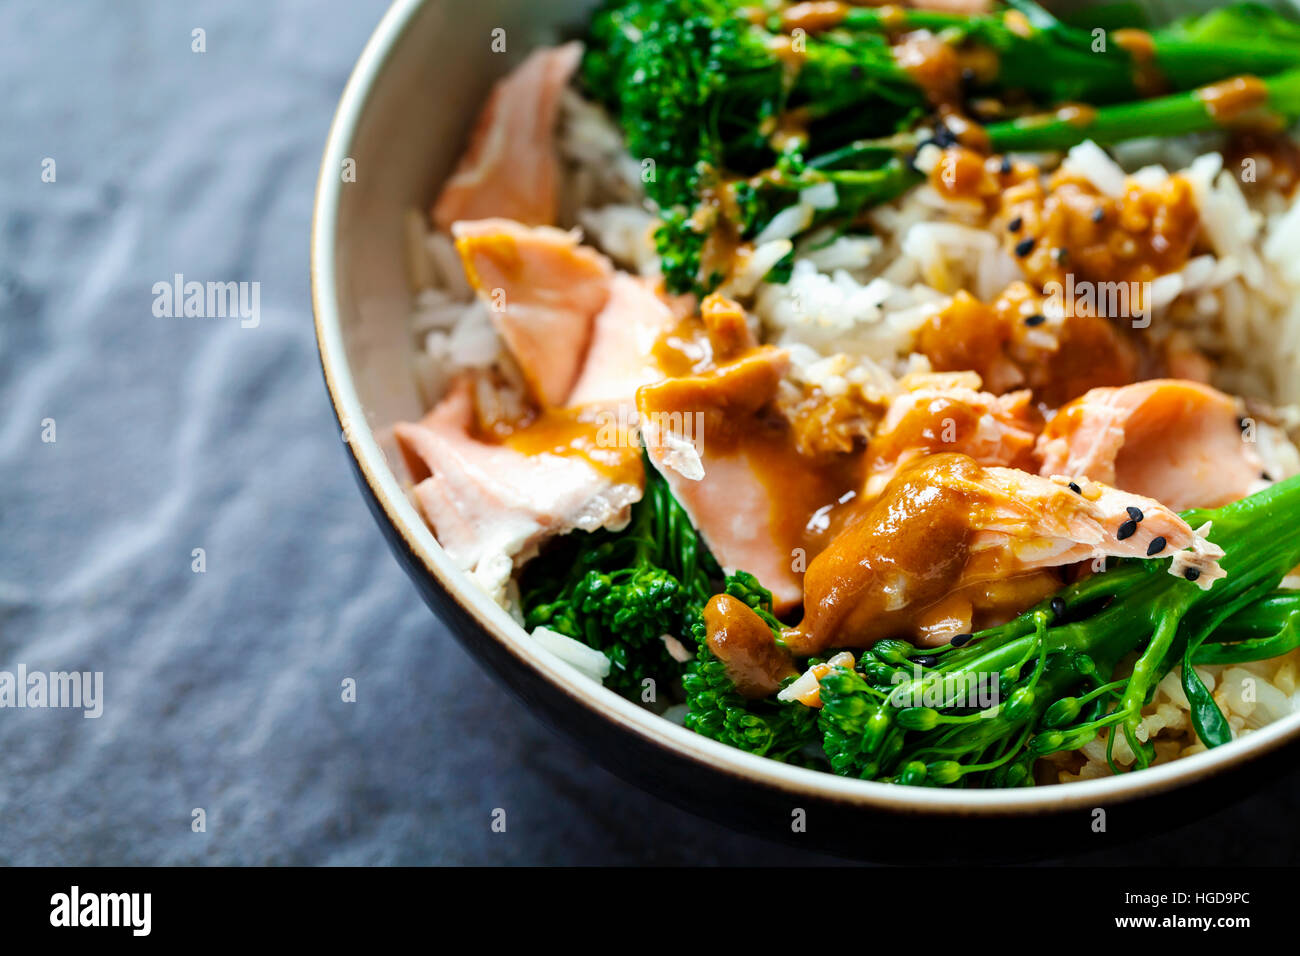 Poached salmon with rice, broccoli and miso sauce - Stock Image